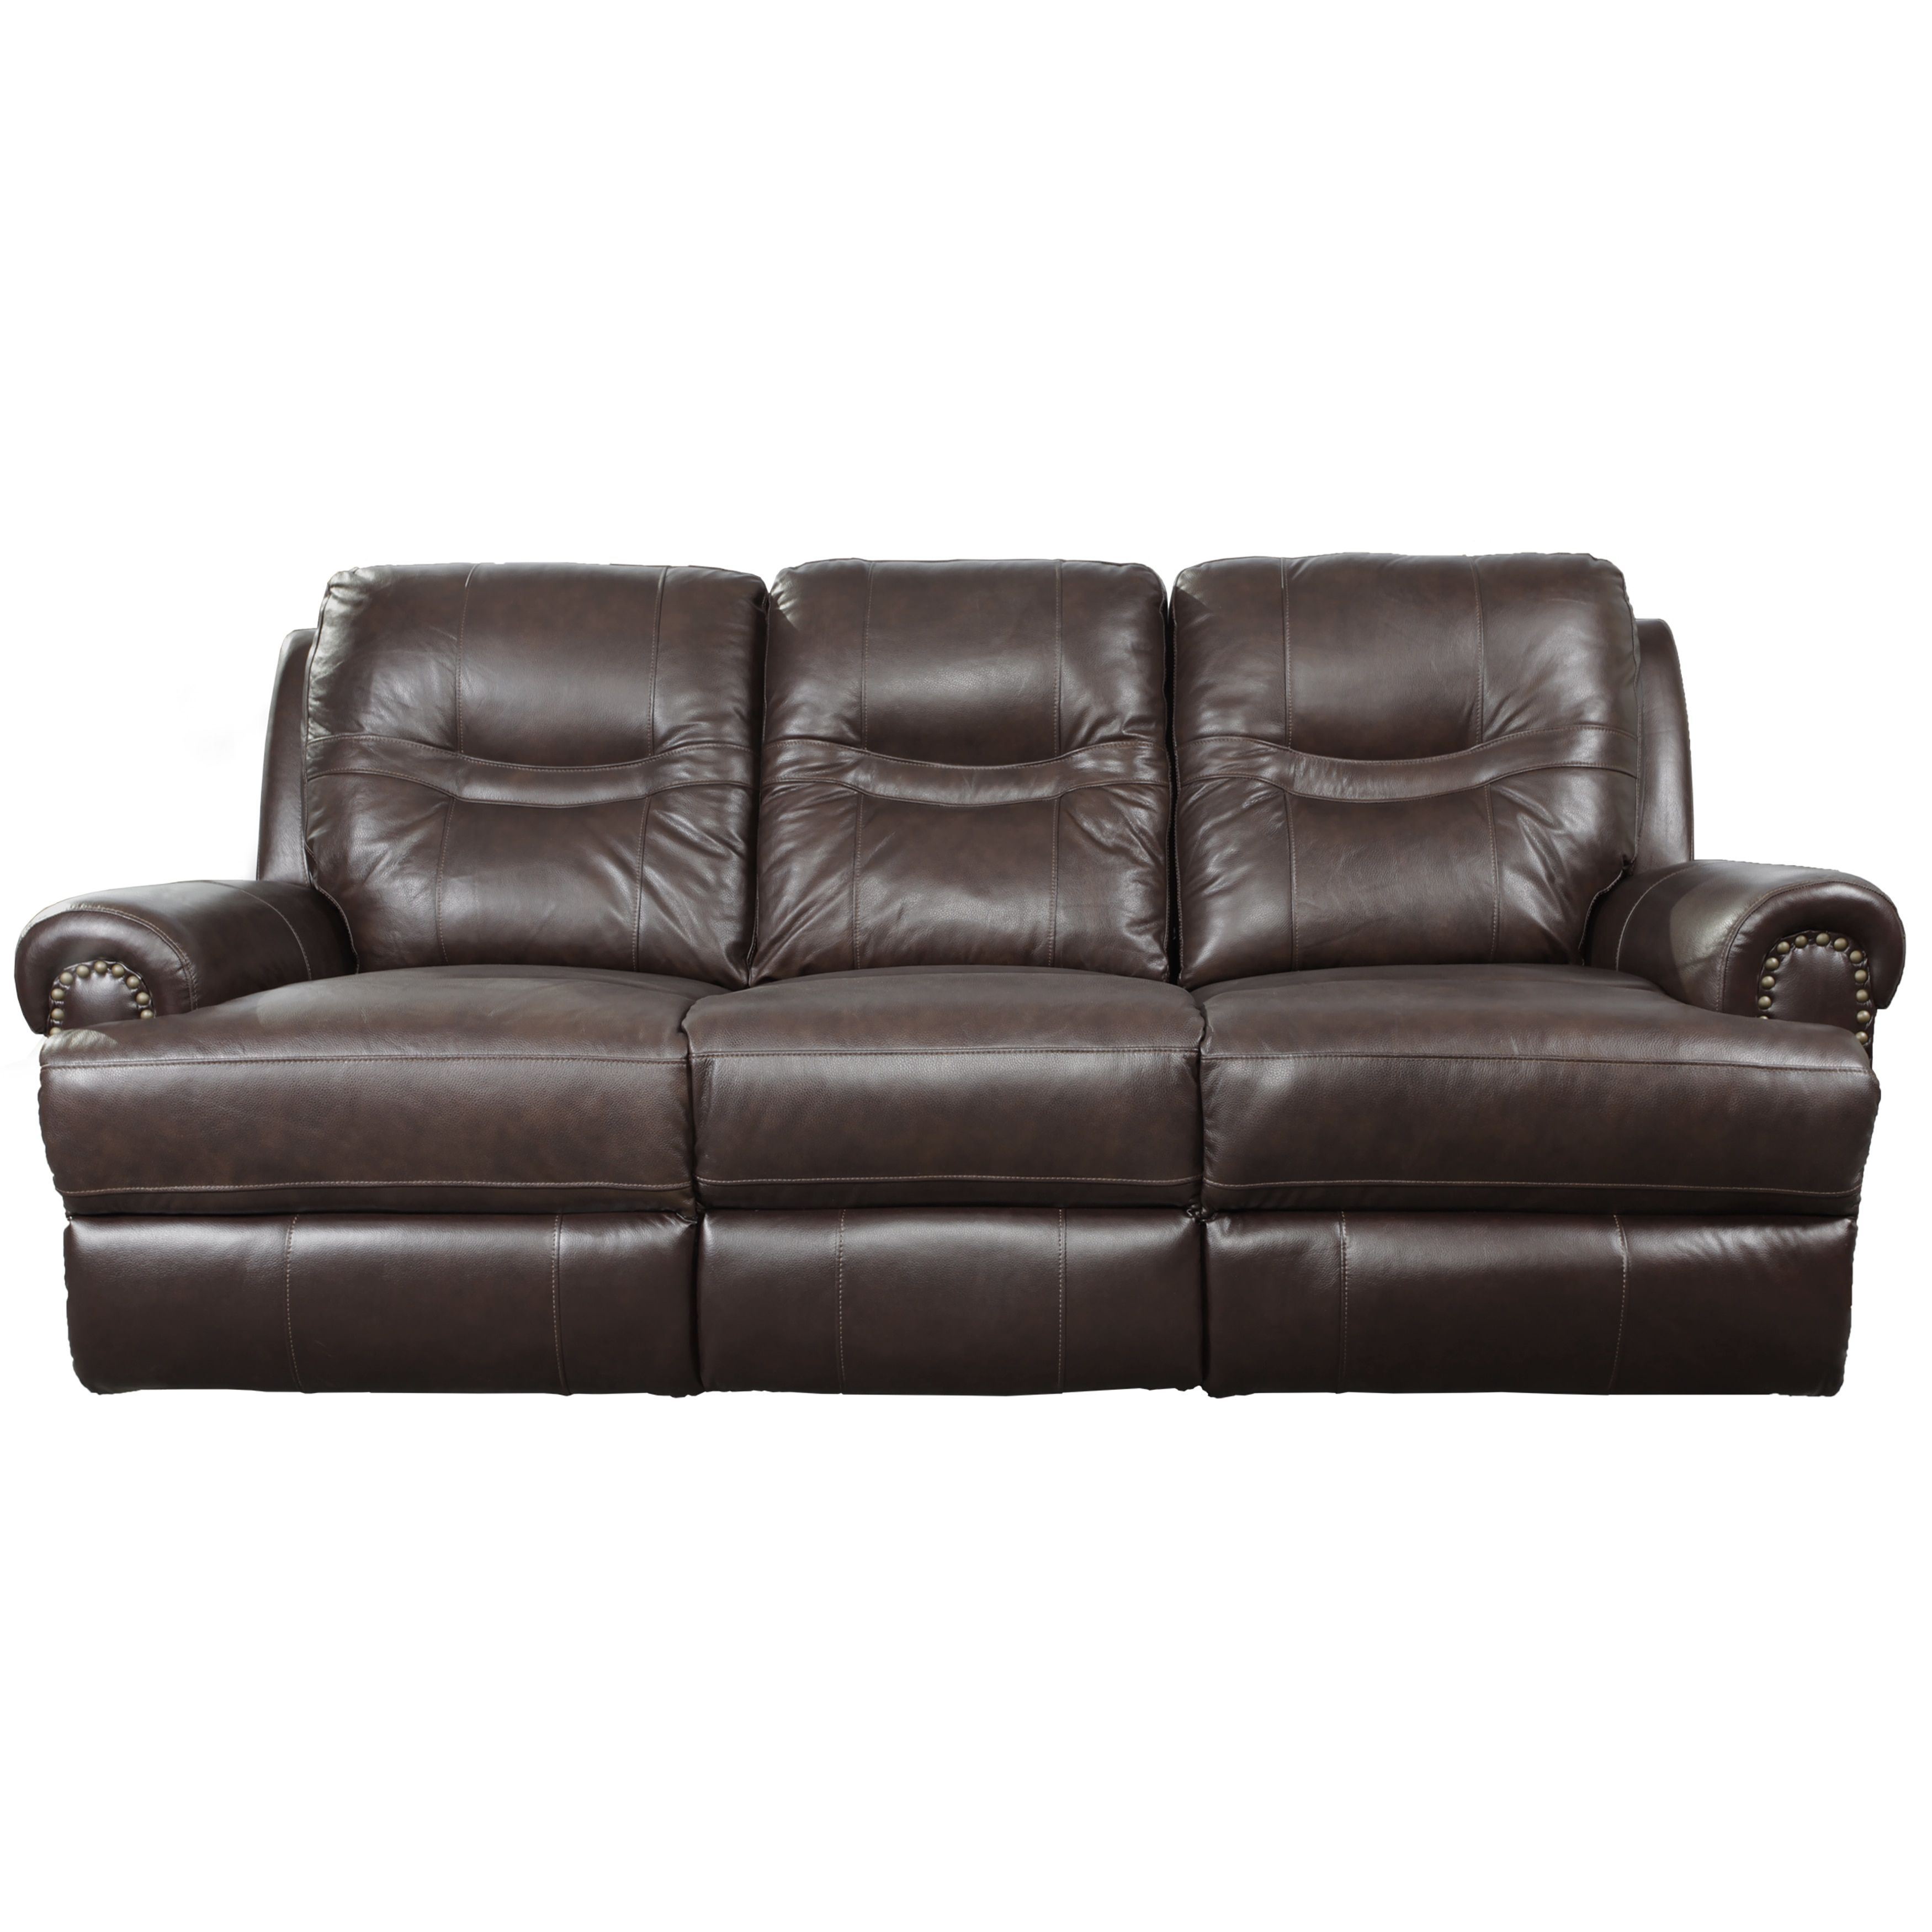 Windemere Brown Top Grain Leather Reclining Sofa